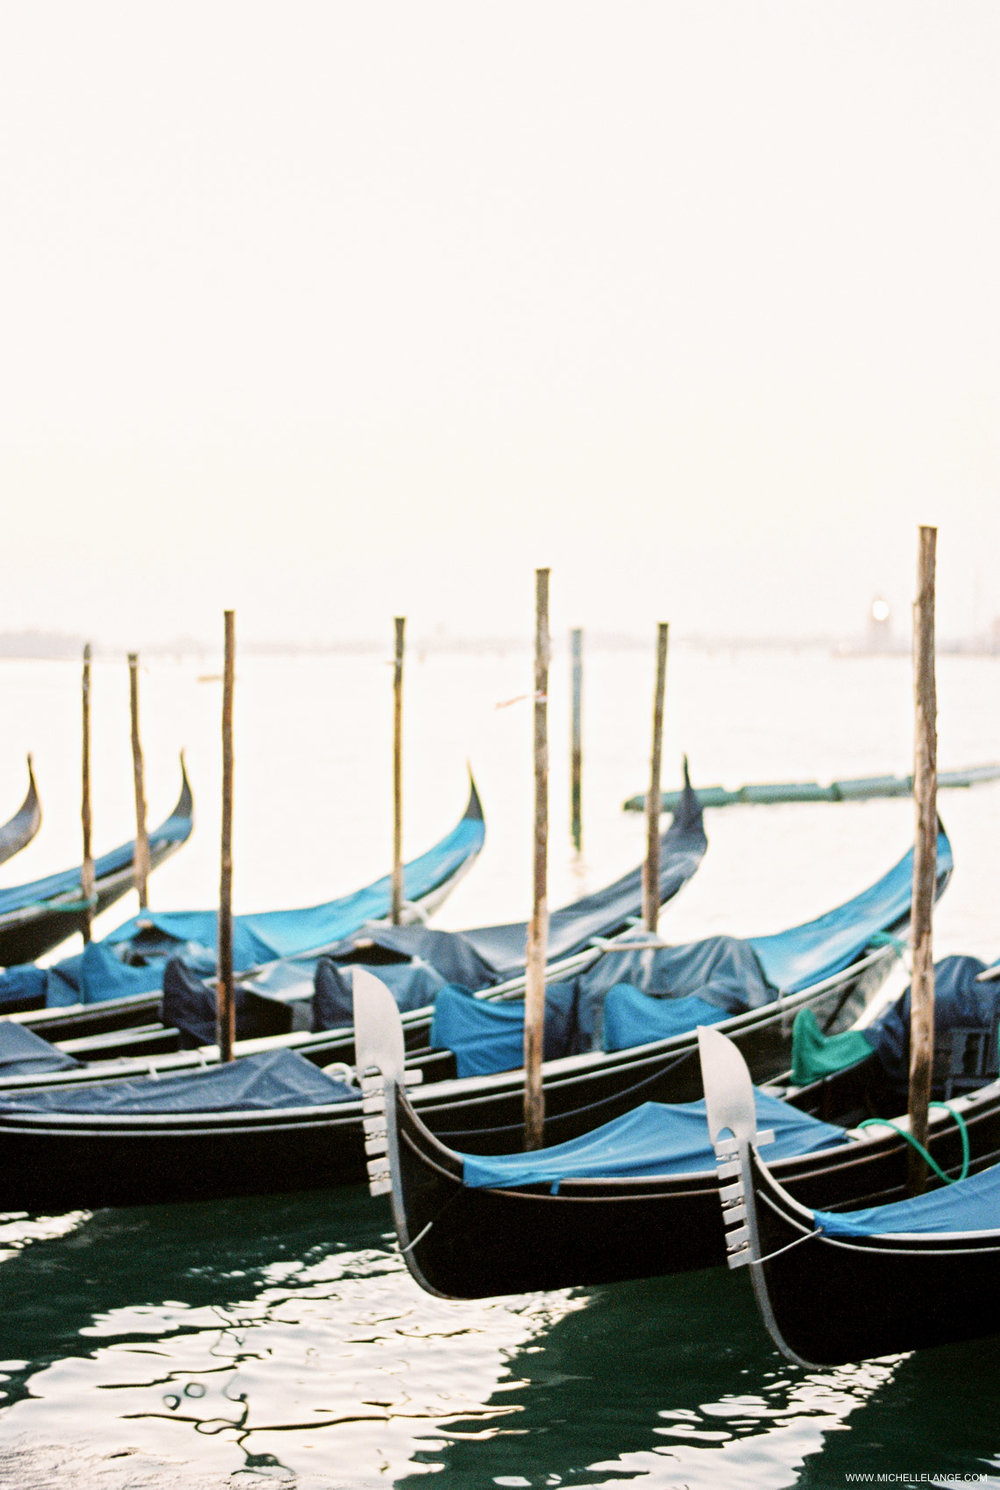 Venice Travel Photography - Gondolas